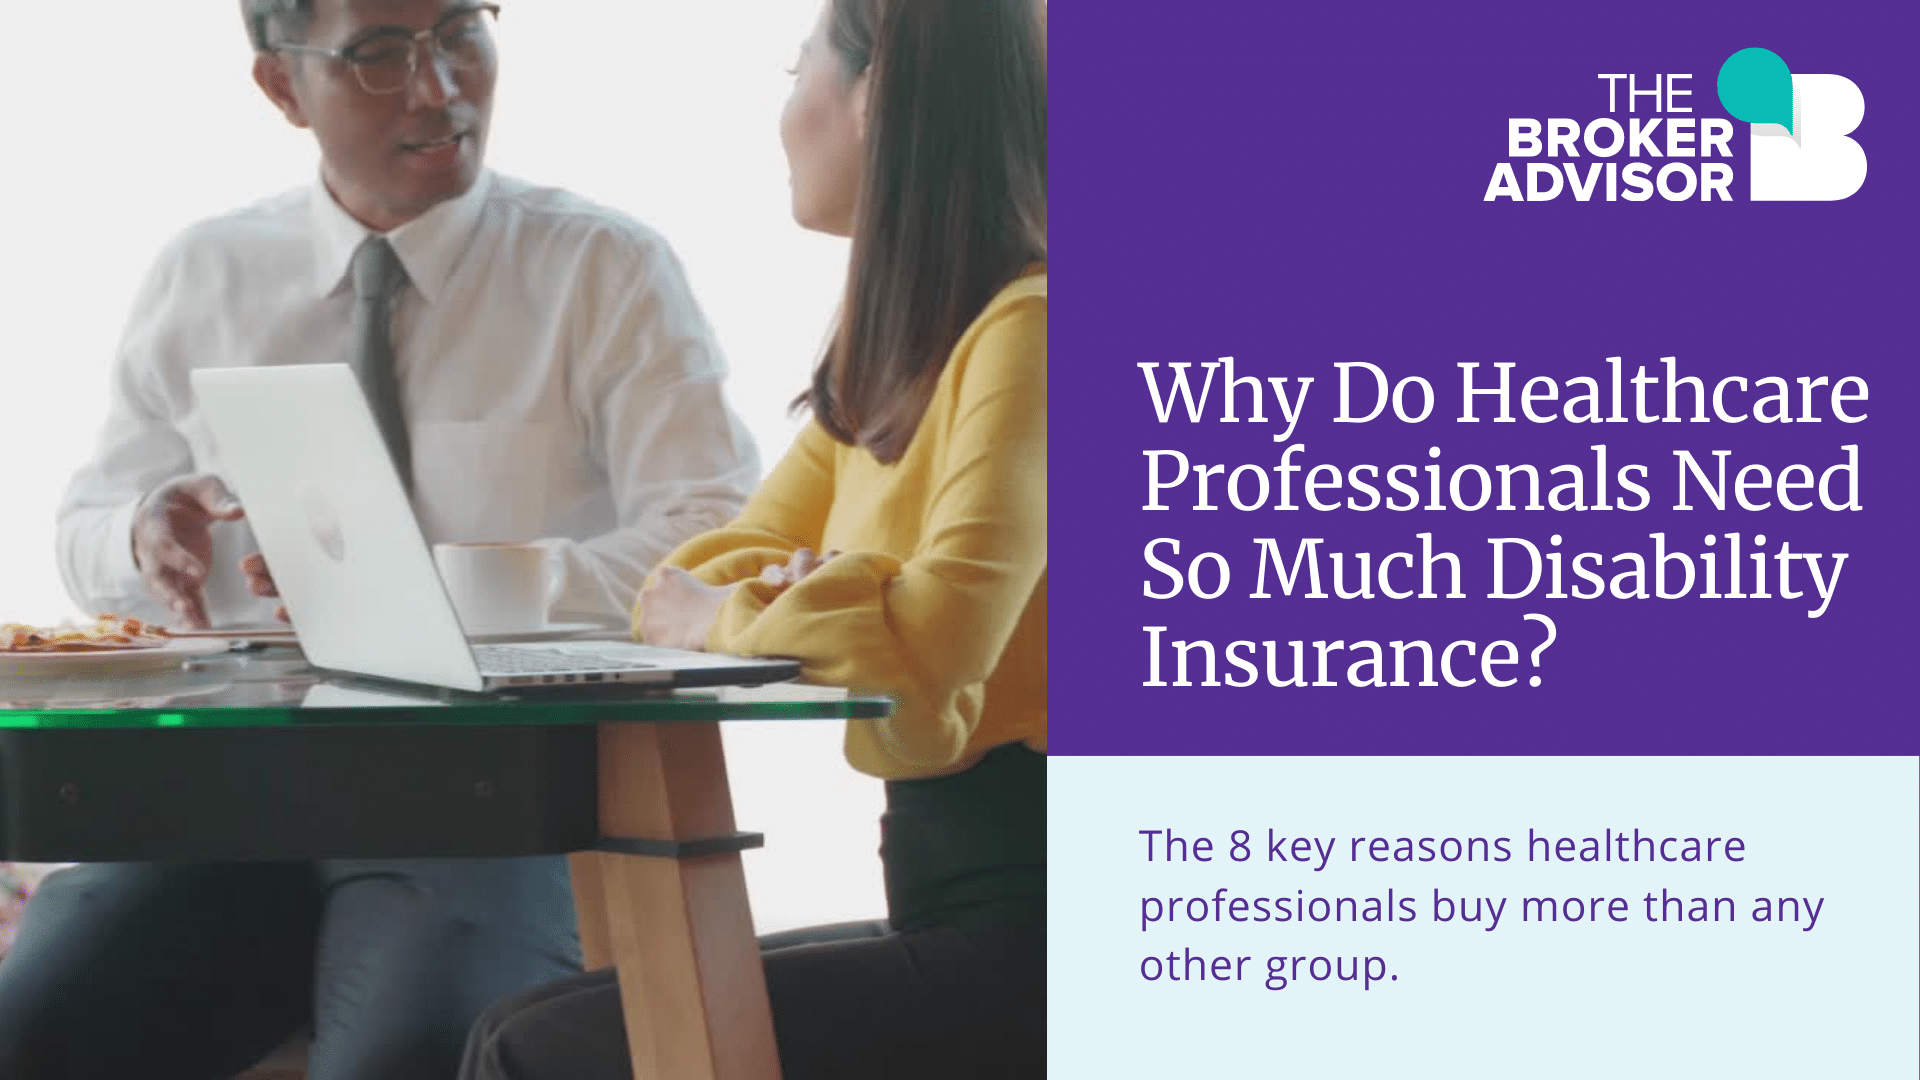 Why Do Healthcare Professionals Need So Much Disability Insurance?